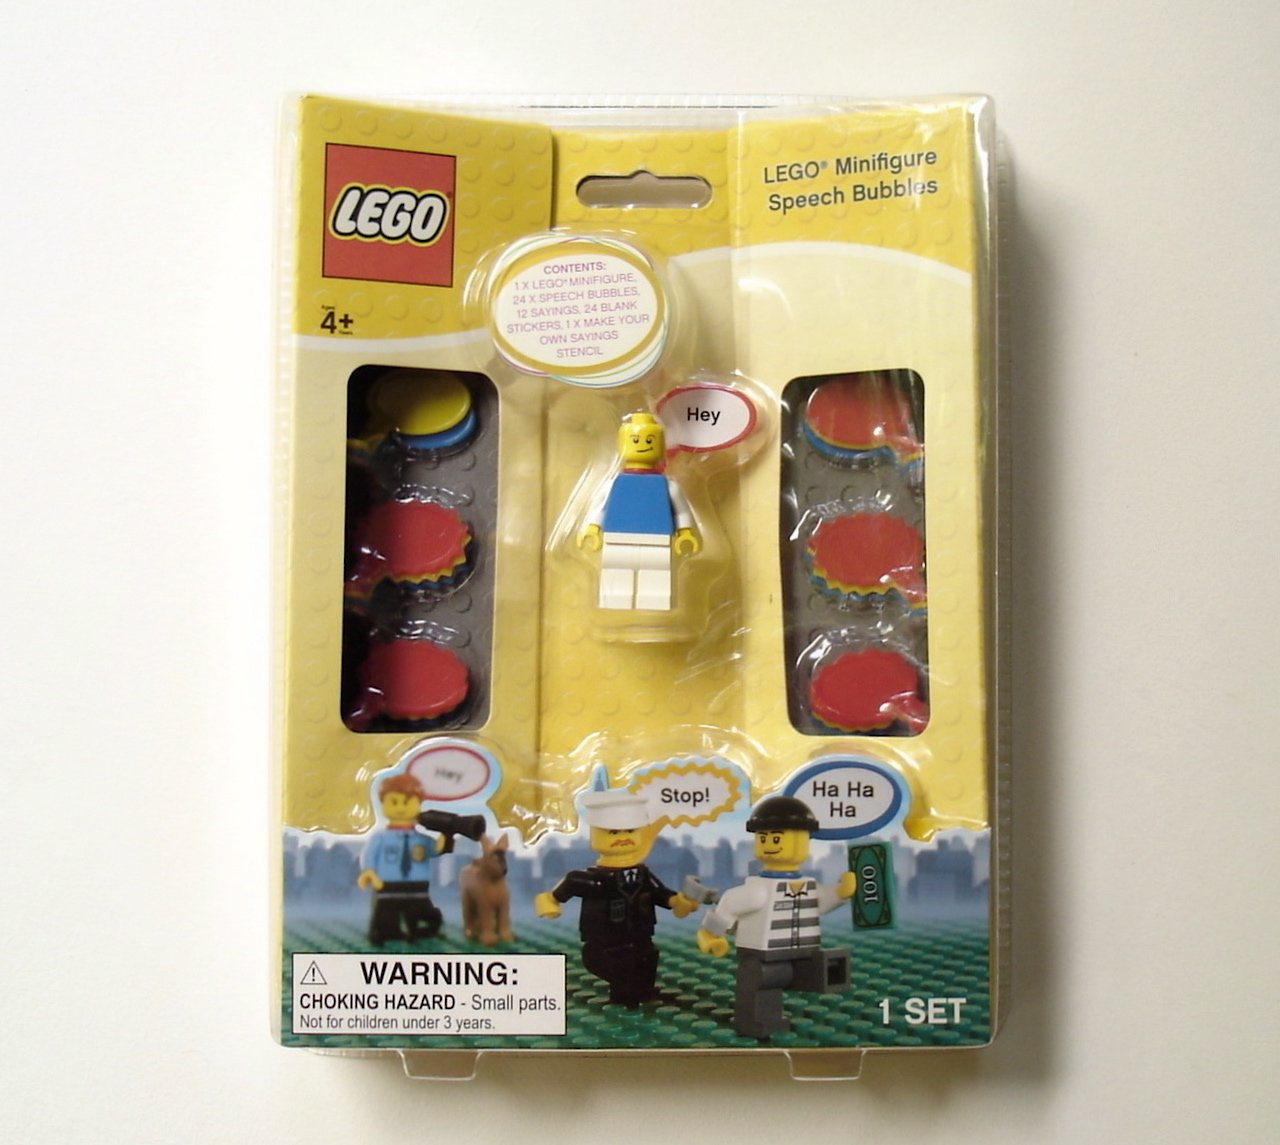 LEGO  Minifigure Speech Bubbles